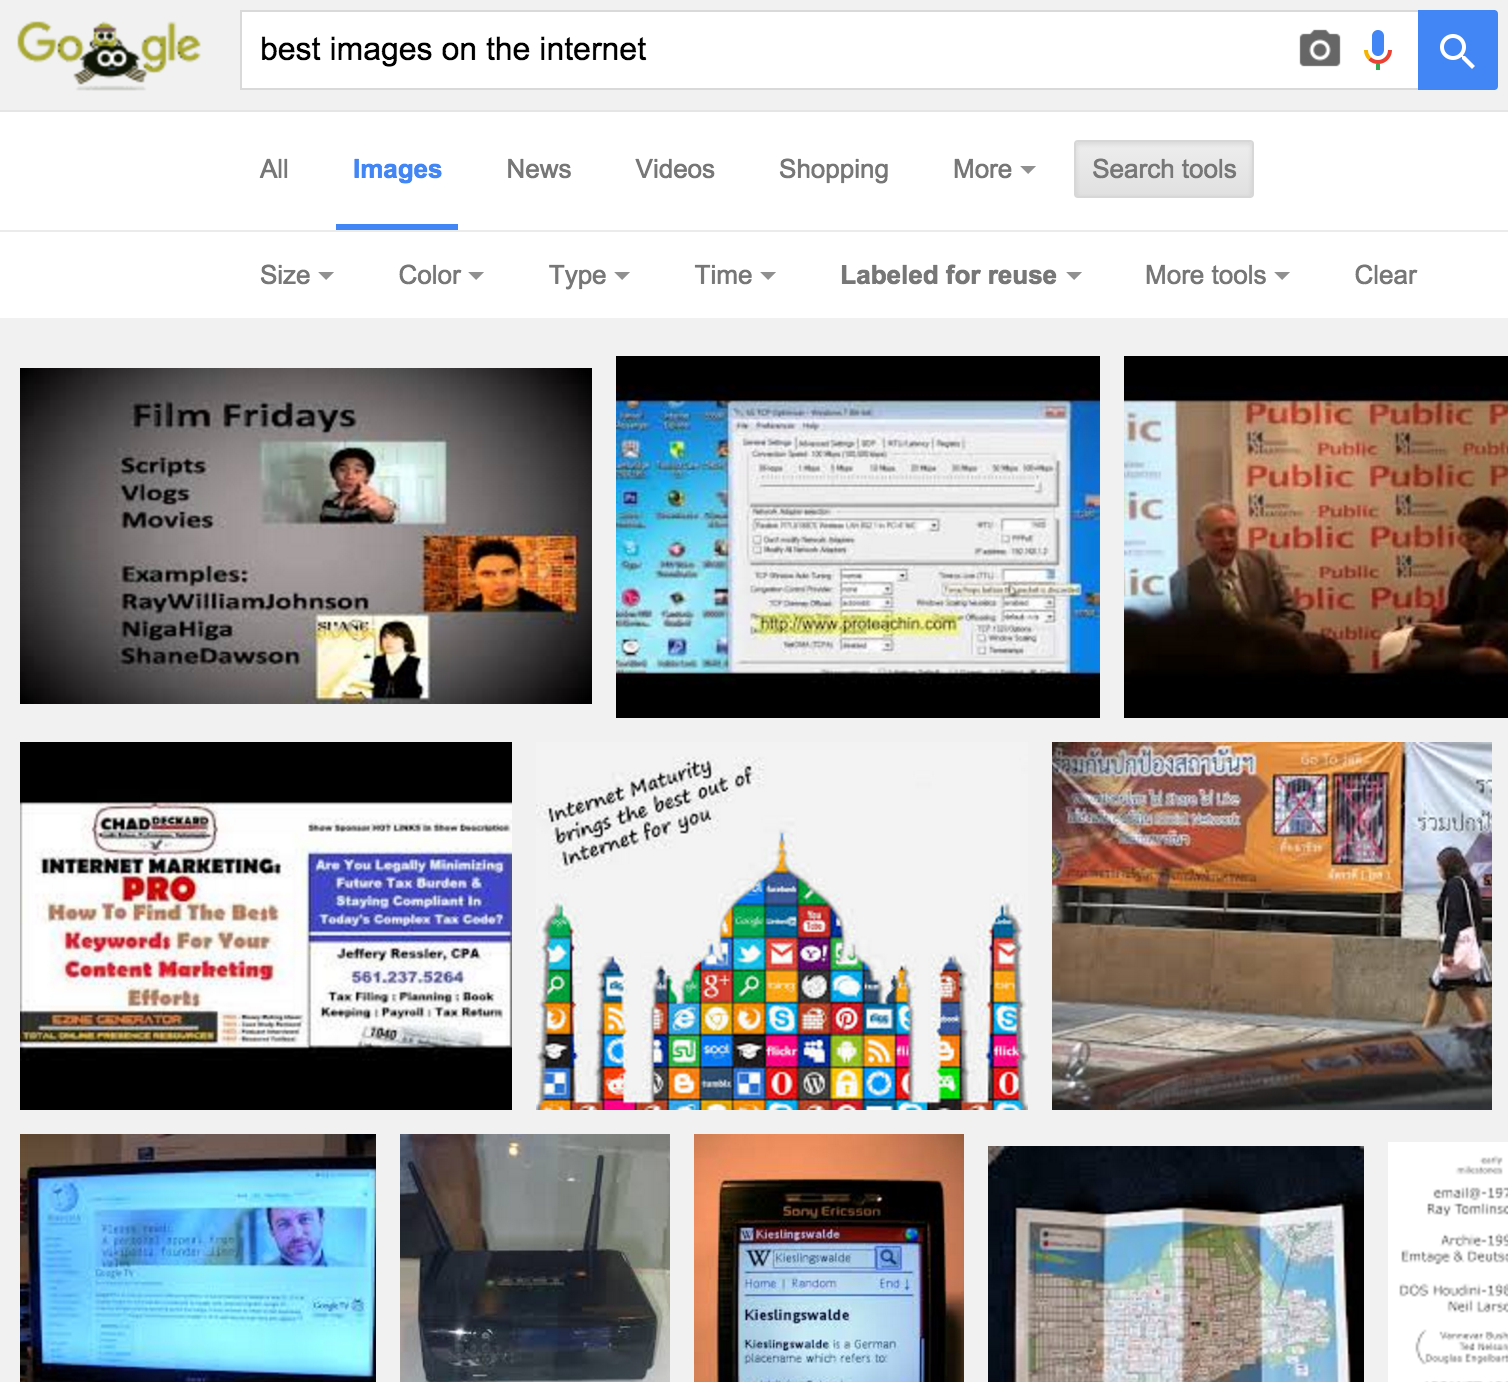 How to use 'Labeled for reuse' with Google Images in order to avoid copyright infringement